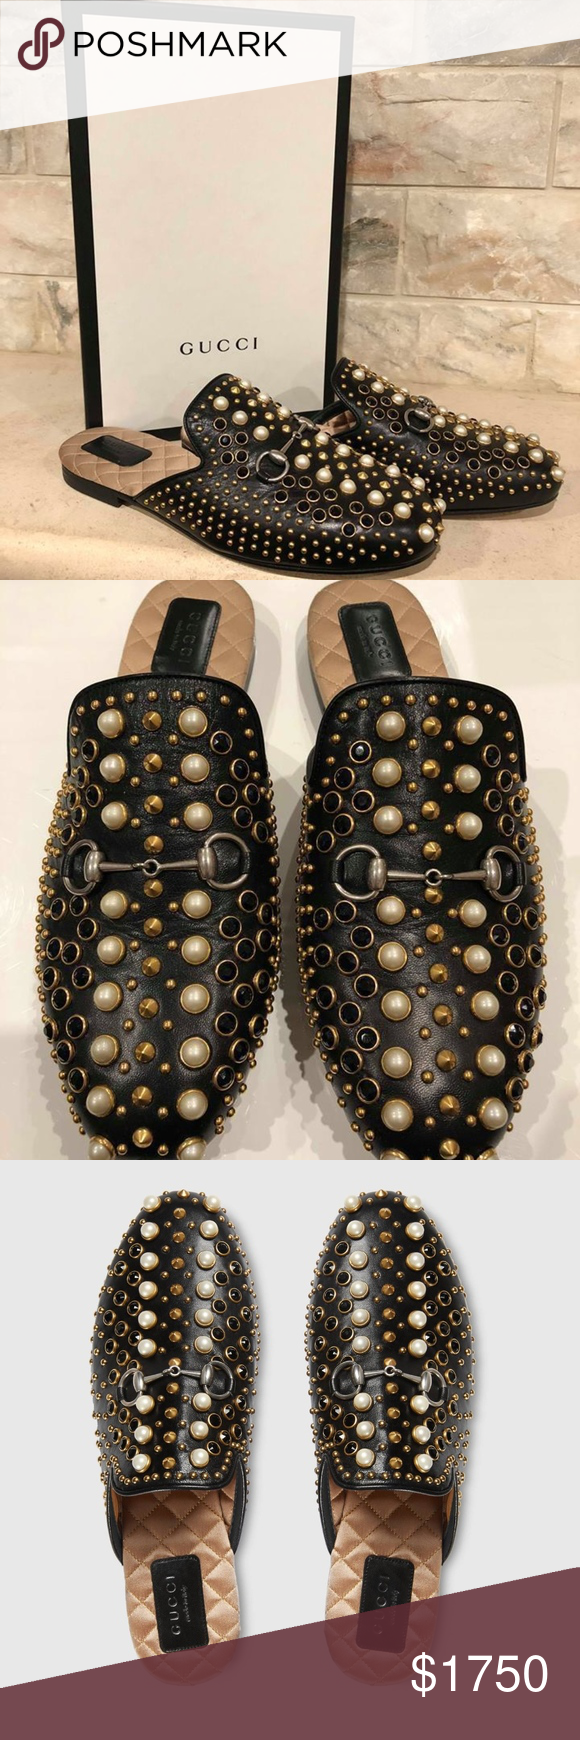 464cc790d Gucci Princetown Black Leather Pearl Stud Slide Gucci Princetown Black  Leather Pearl Stud Slide Loafer Mule